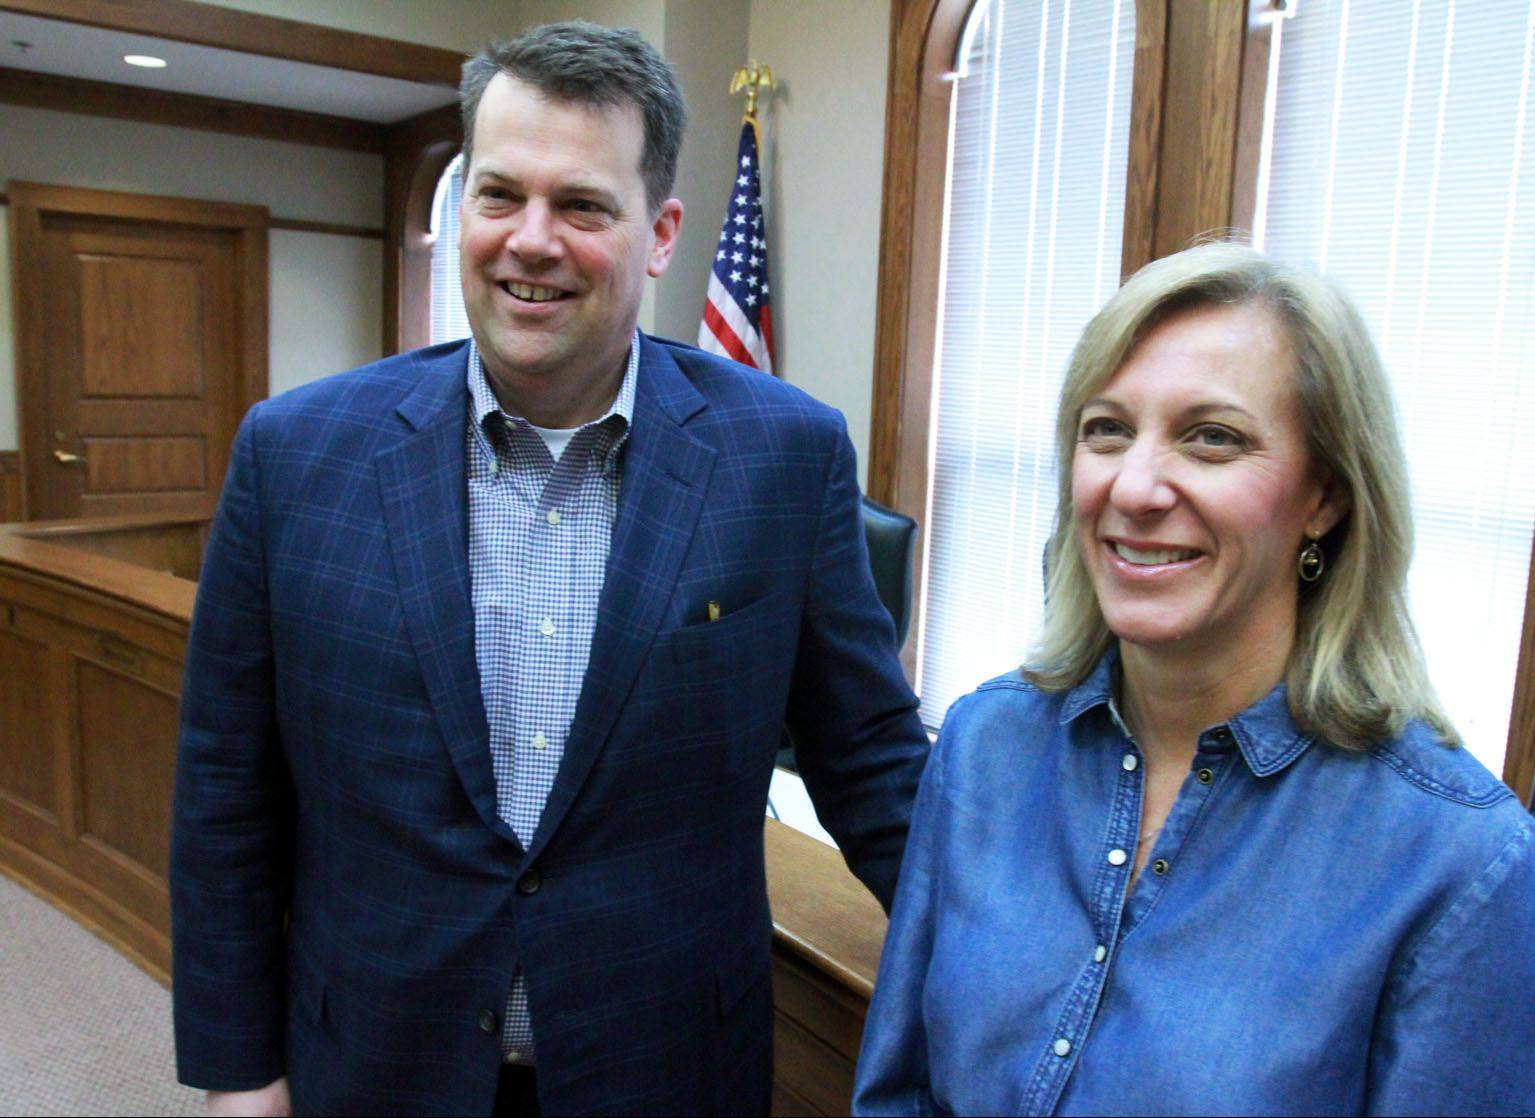 New Barrington village trustees Pete Douglas and Sue Padula will be sworn in at the village board meeting of Monday, May 13. Both won election April 9 in uncontested races.